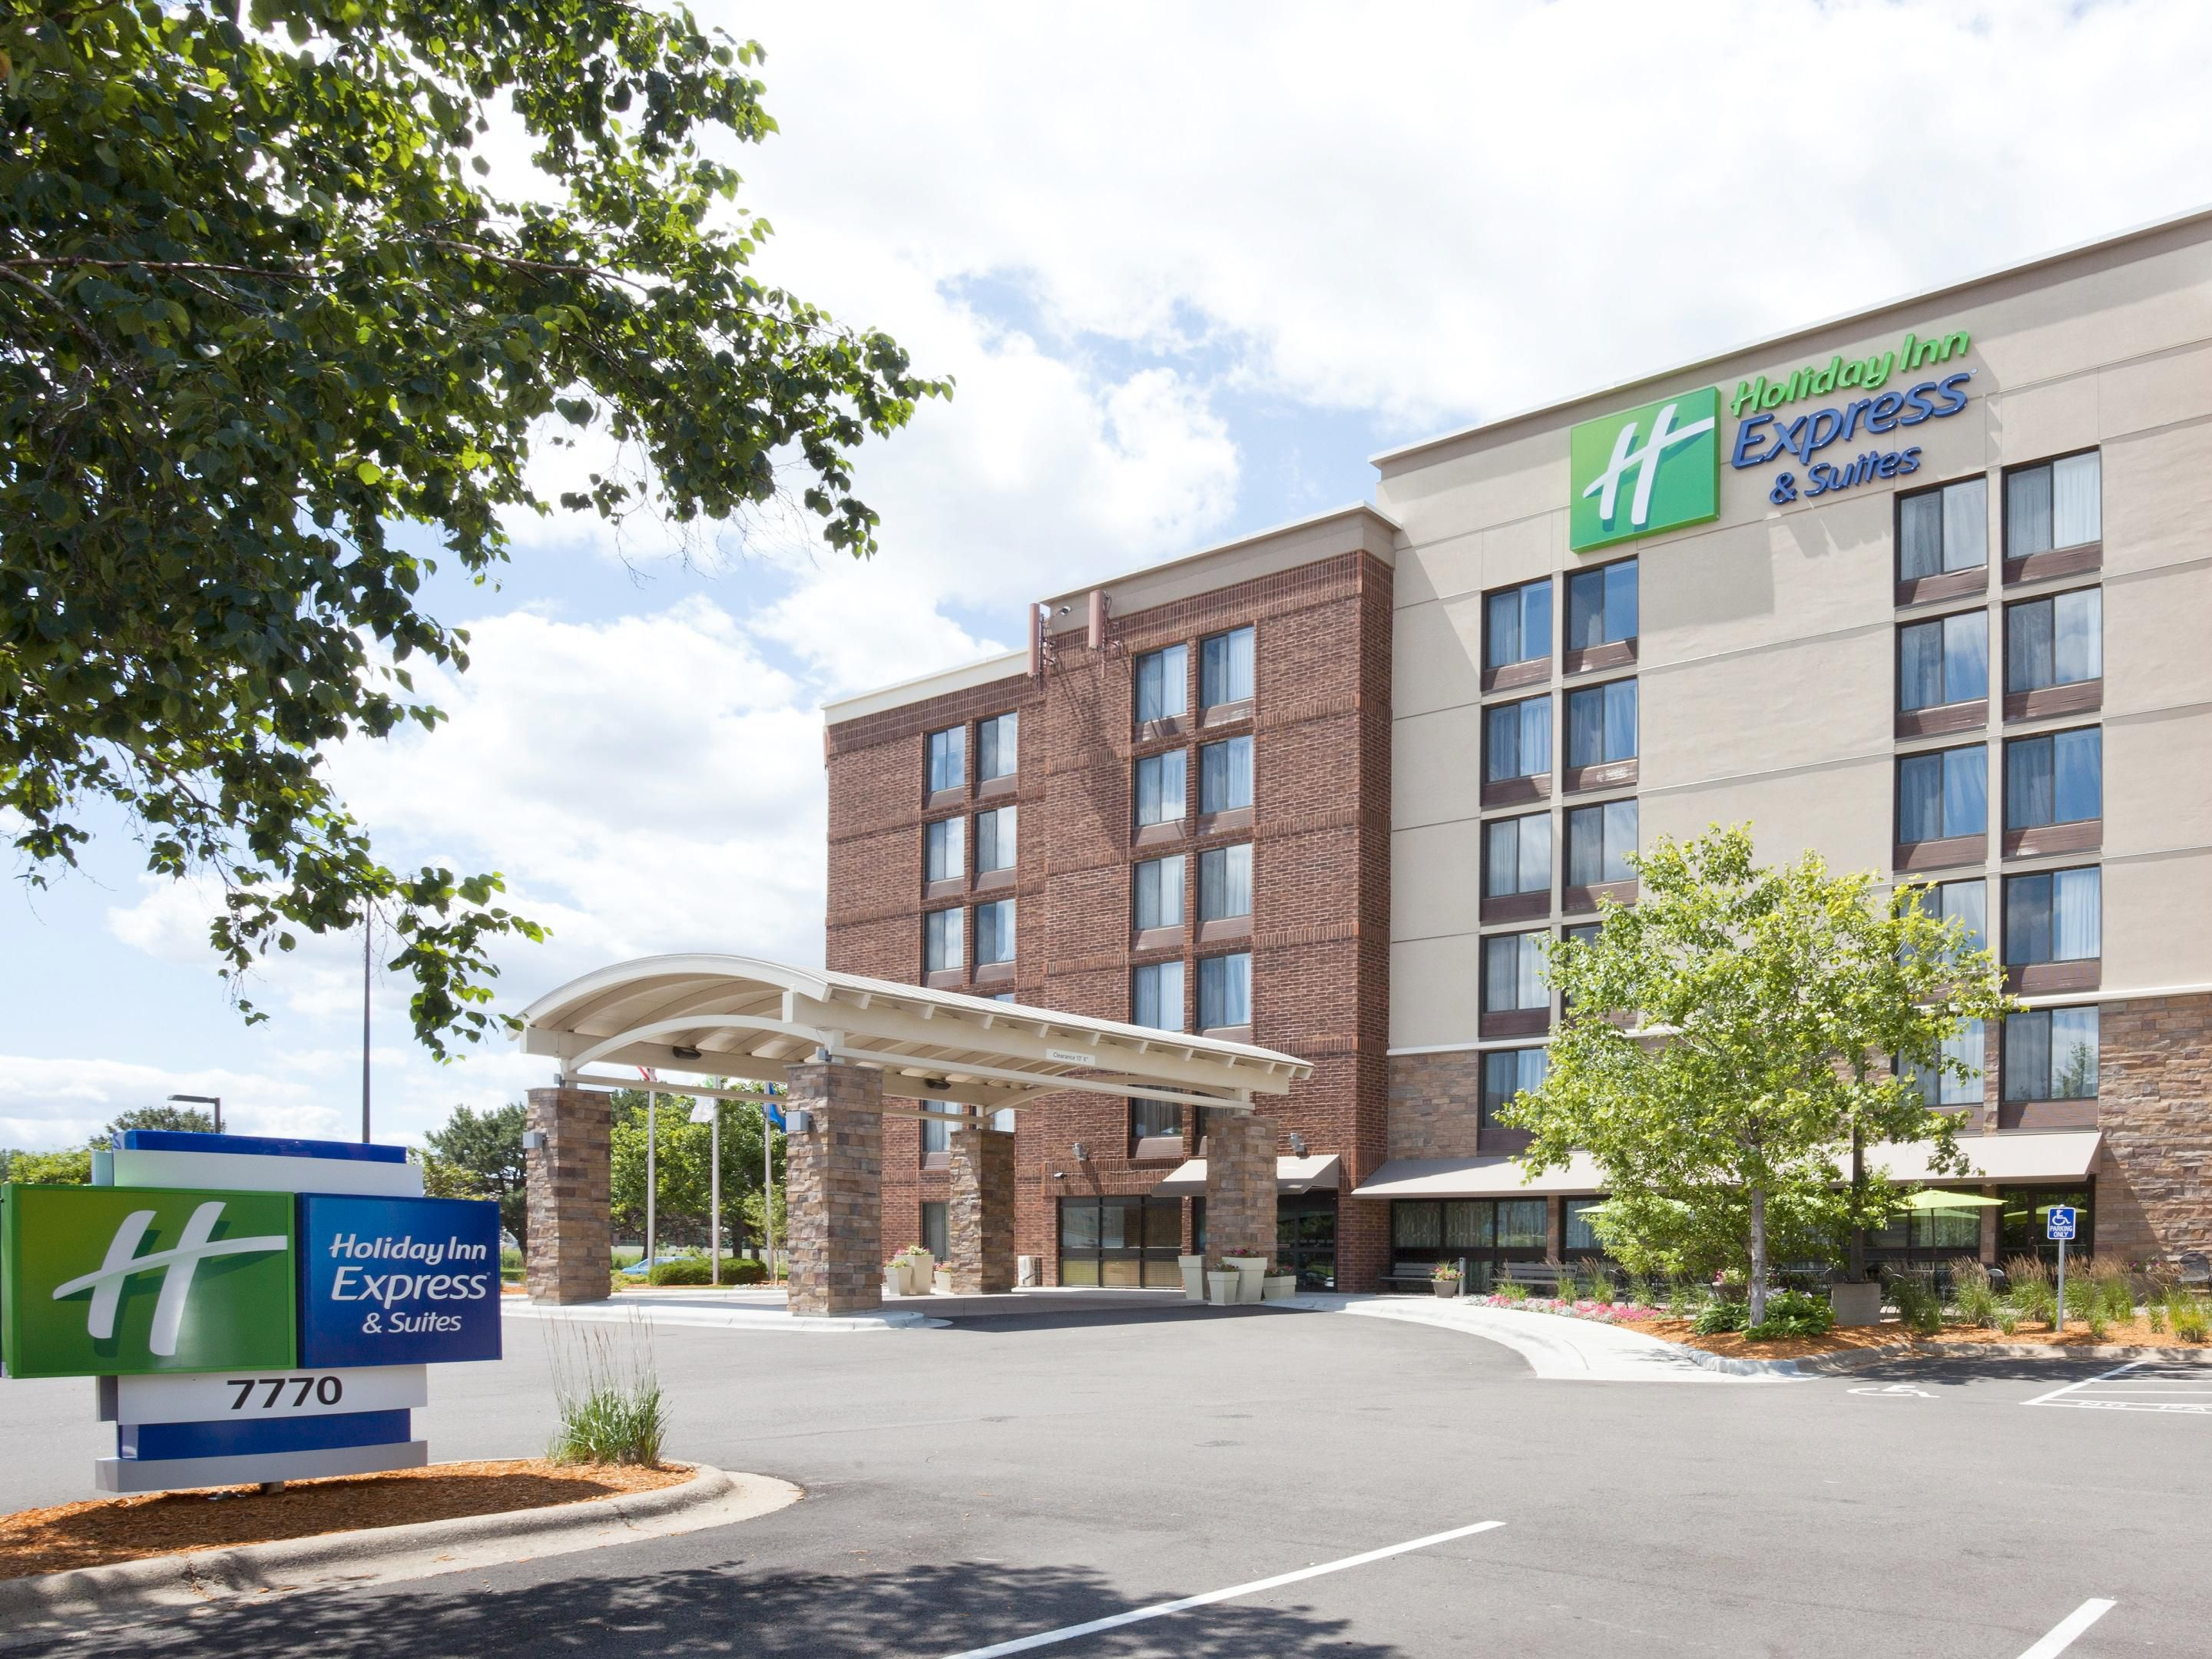 Permalink to Holiday Inn Express Minneapolis